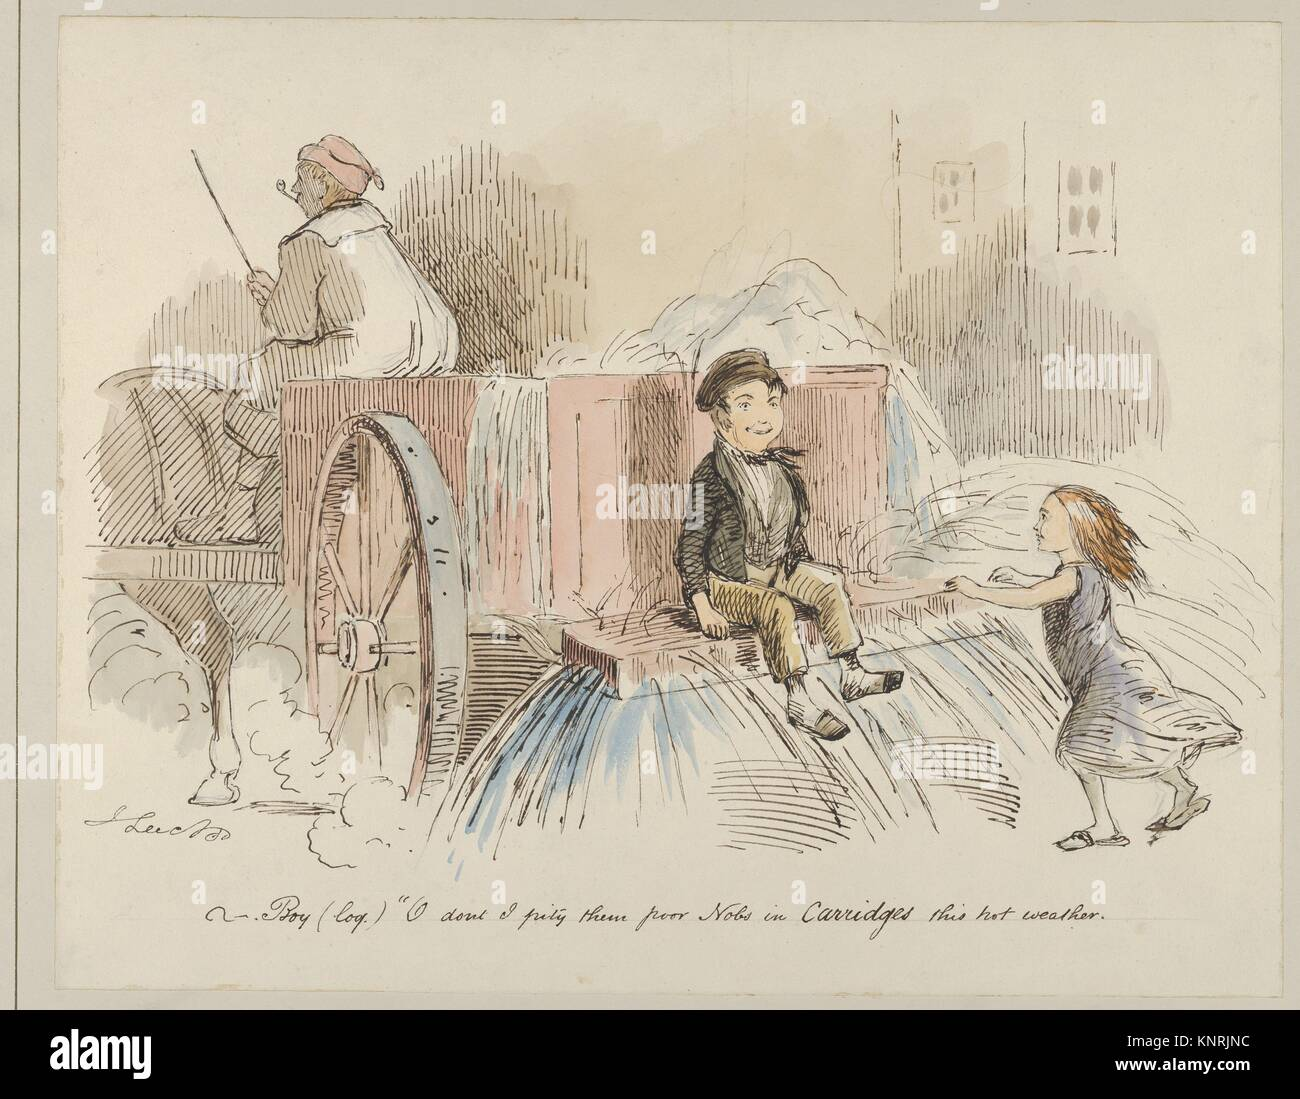 Boy (loq.) O don't I pity them poor Nobs in Carriages this hot weather. Artist: John Leech (British, London 1817 Stock Photo